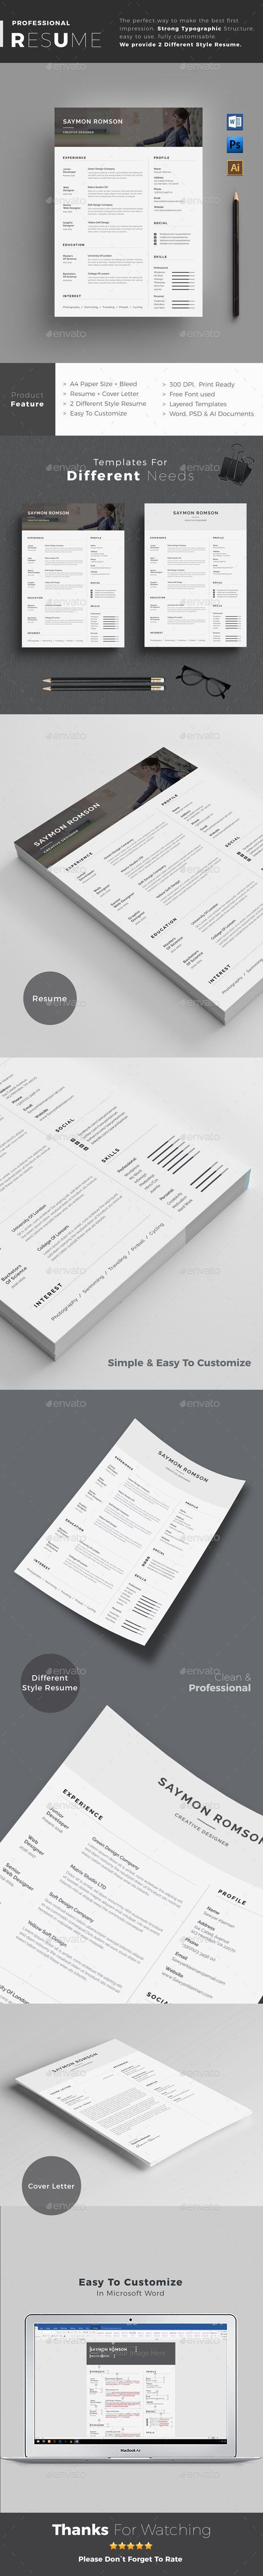 How To Make A Resume On Word 2010 Resume Resume Word Template  Cv Template With Super Clean And .